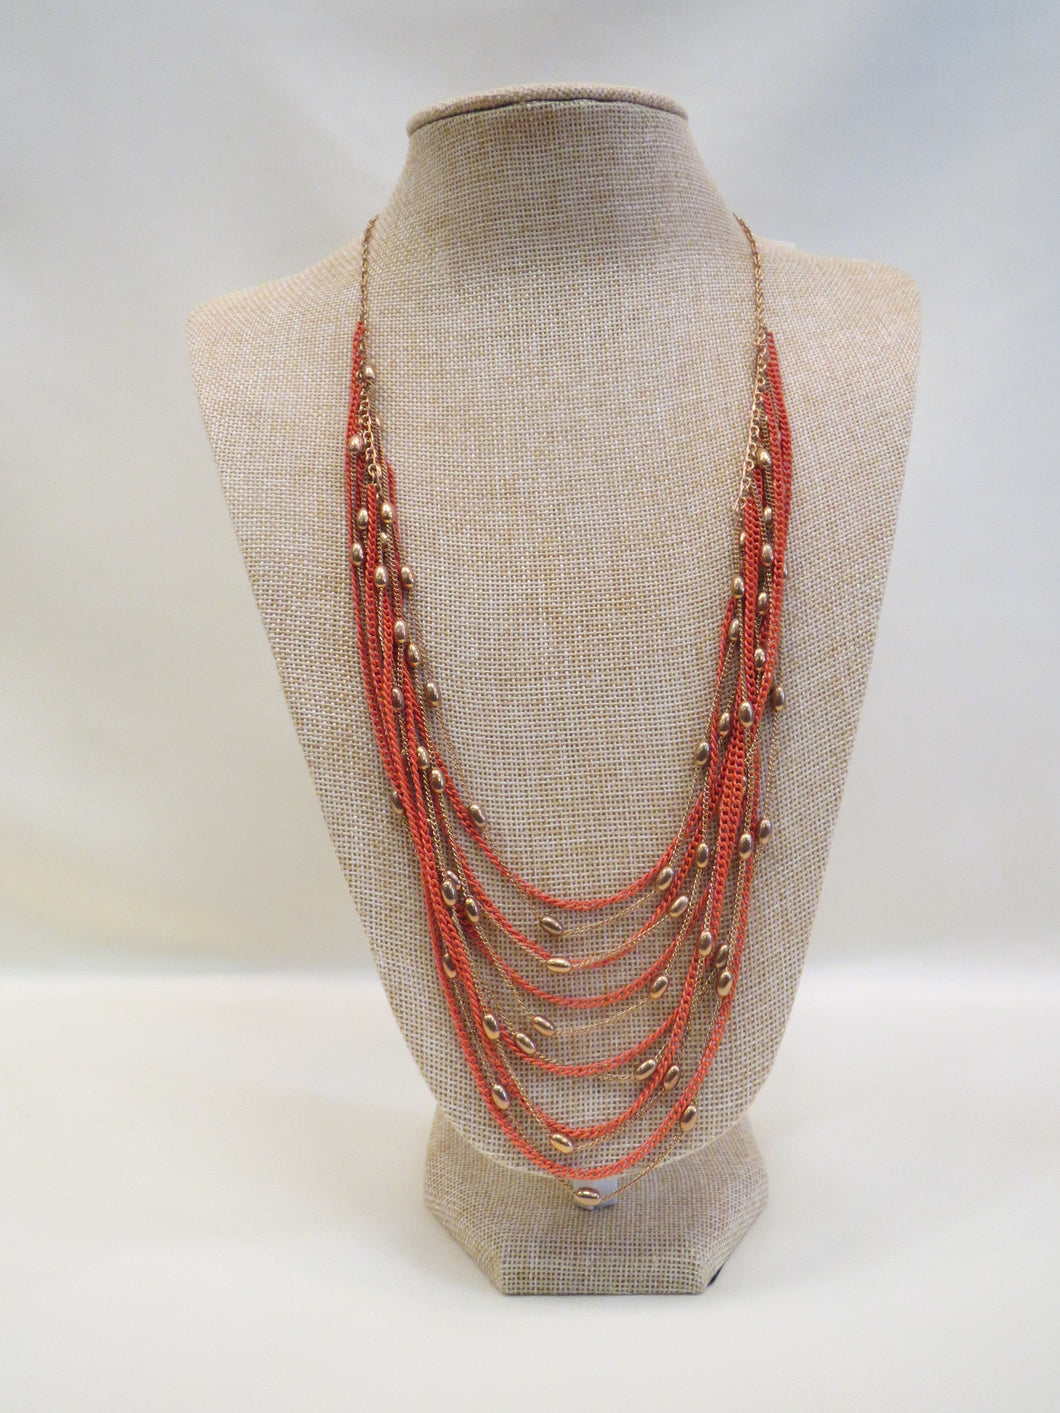 ADO | Orange & Gold Bib Necklace Long - All Decd Out